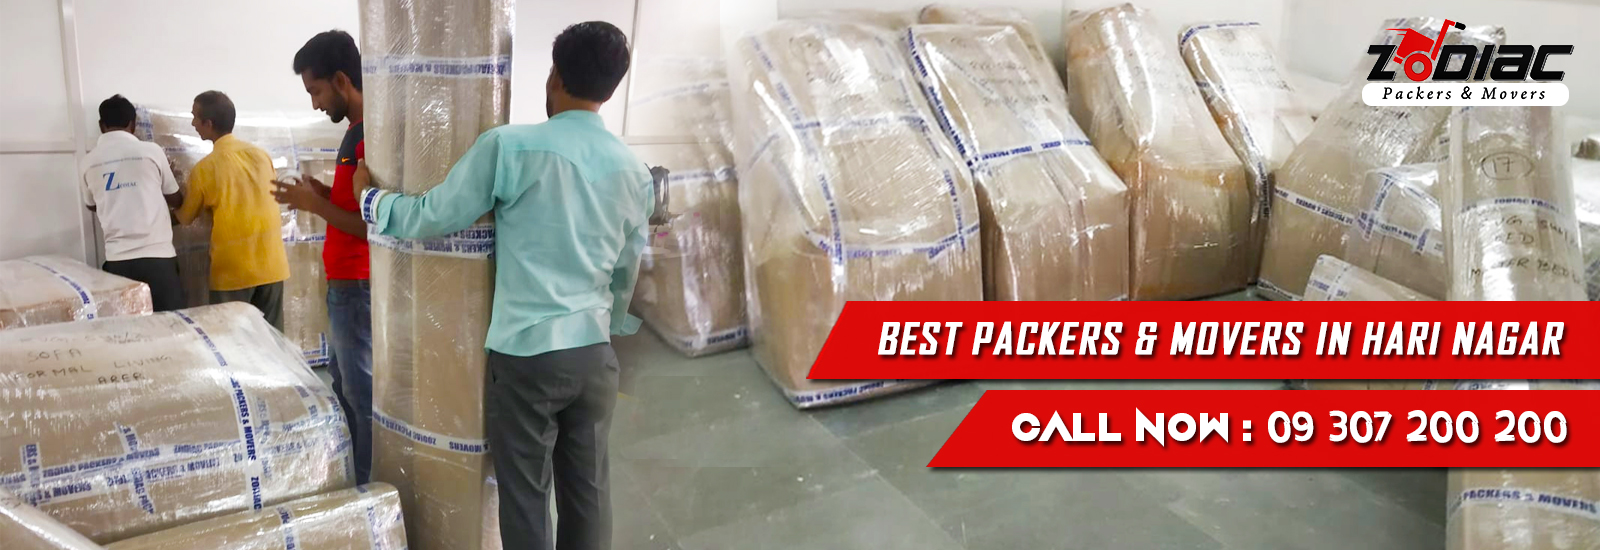 Packers and Movers in Hari Nagar